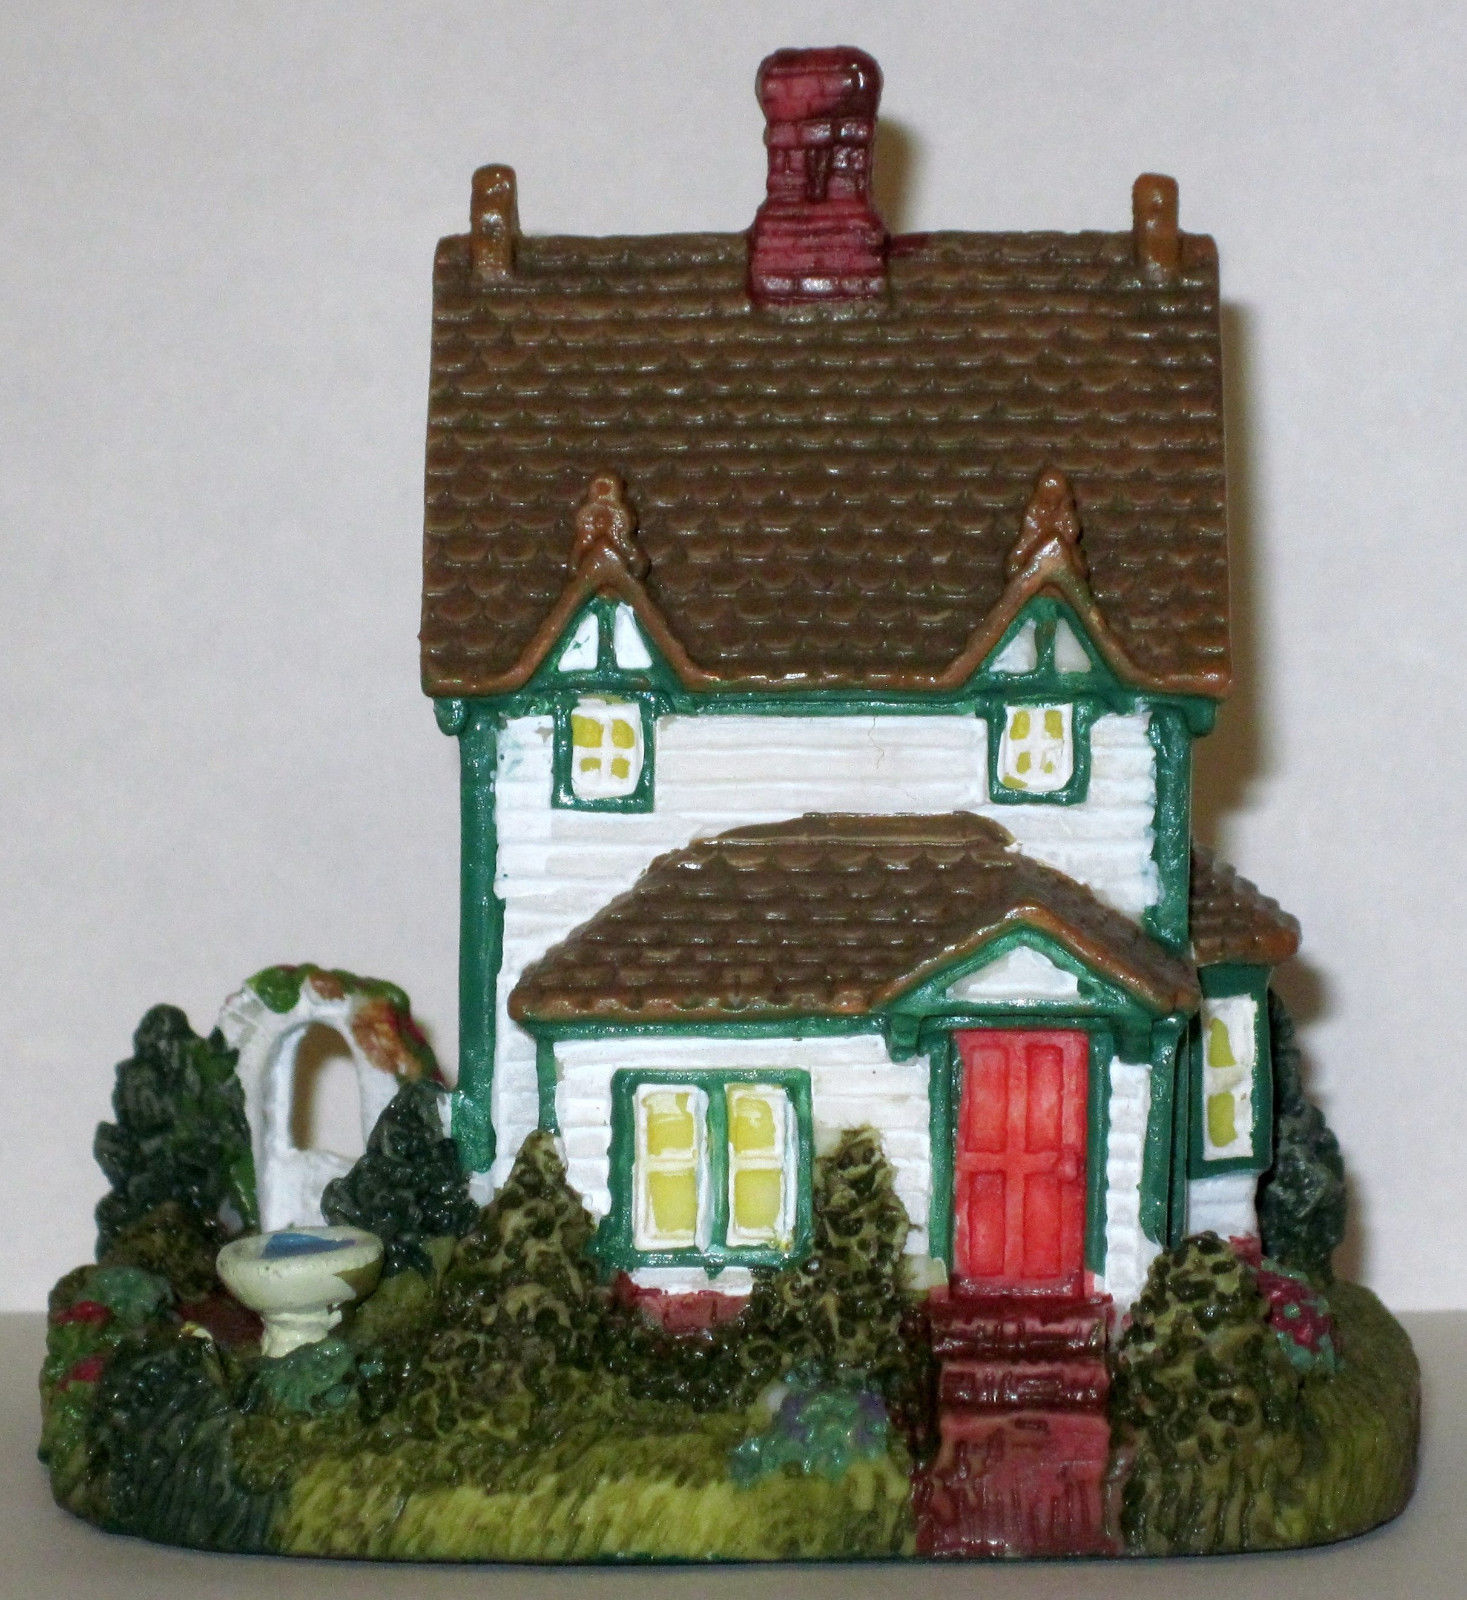 MIB 1997 LIBERTY FALLS PASTOR GEORGE KENDELL'S PARSONAGE AH129 Americana Collect